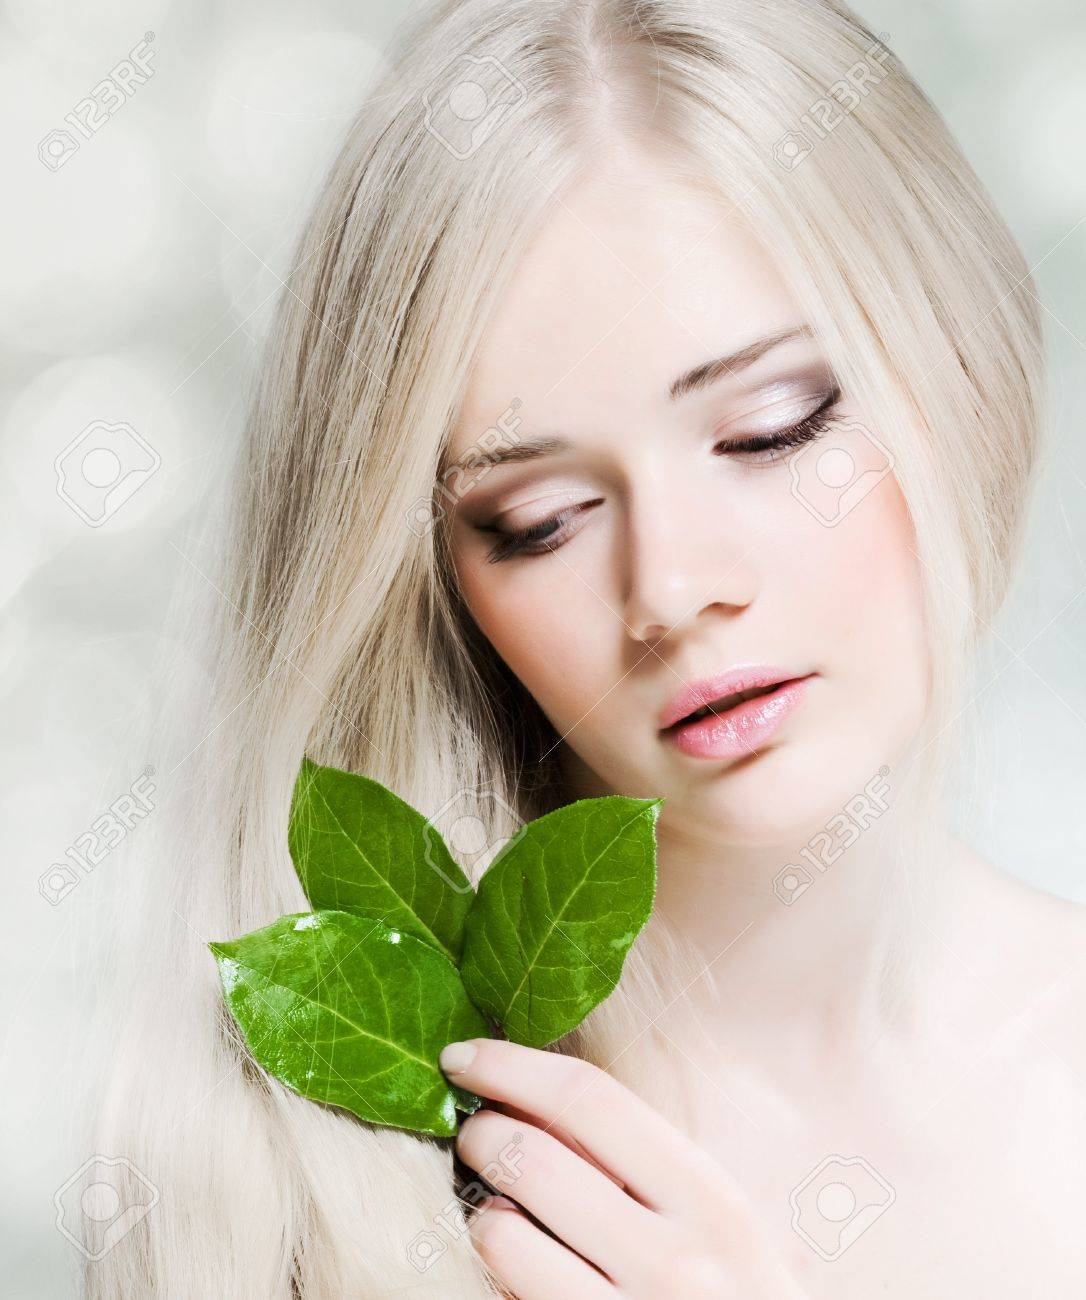 Beautiful young girl with healthy skin and green leaf - 11034653